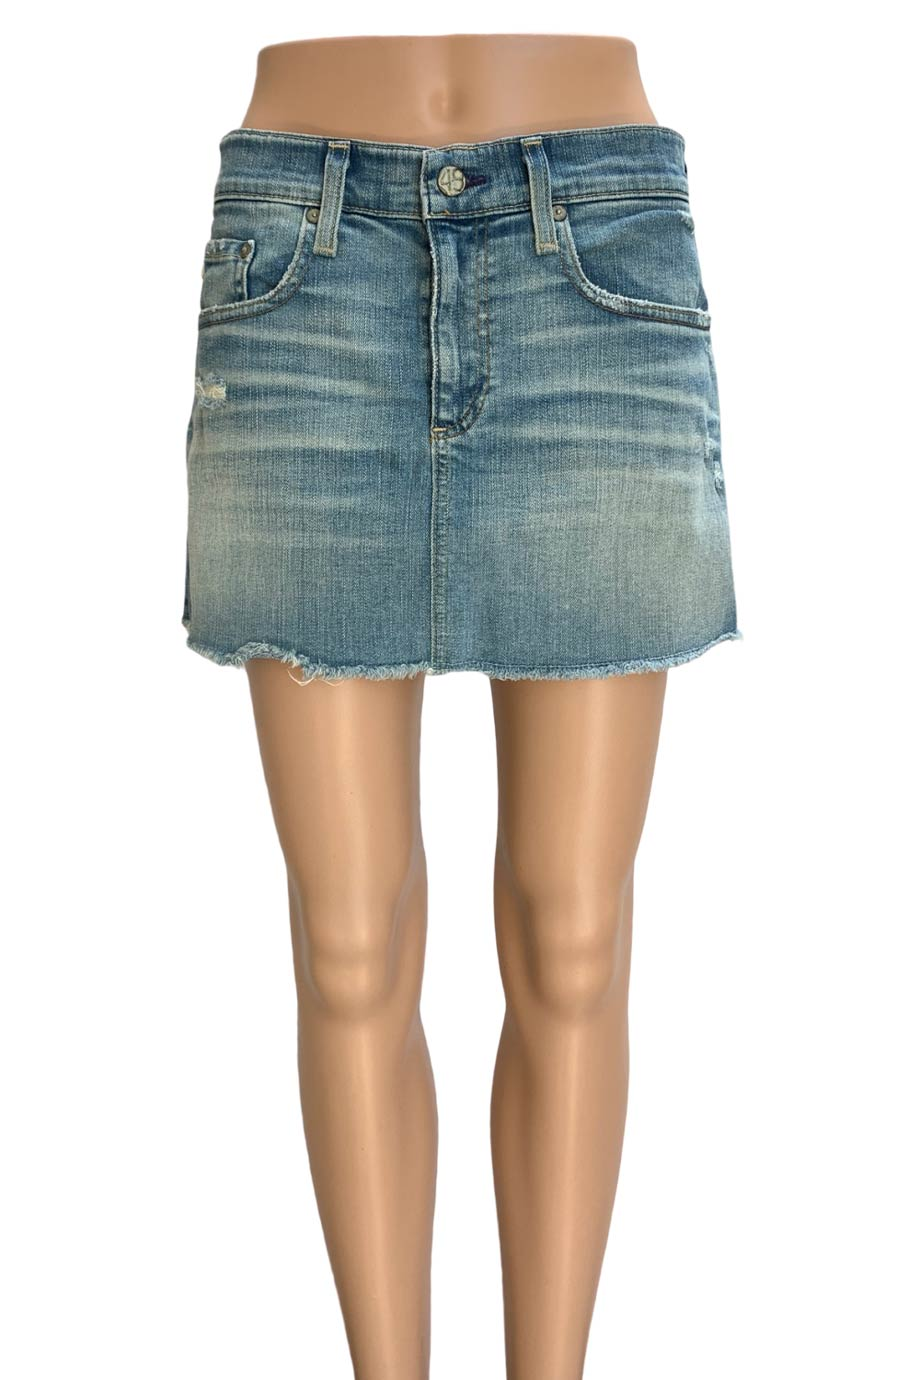 "AG Adriano Goldschmied A-Line Jean Mini Skirt ""23 Years Dust"" / Sz 29"